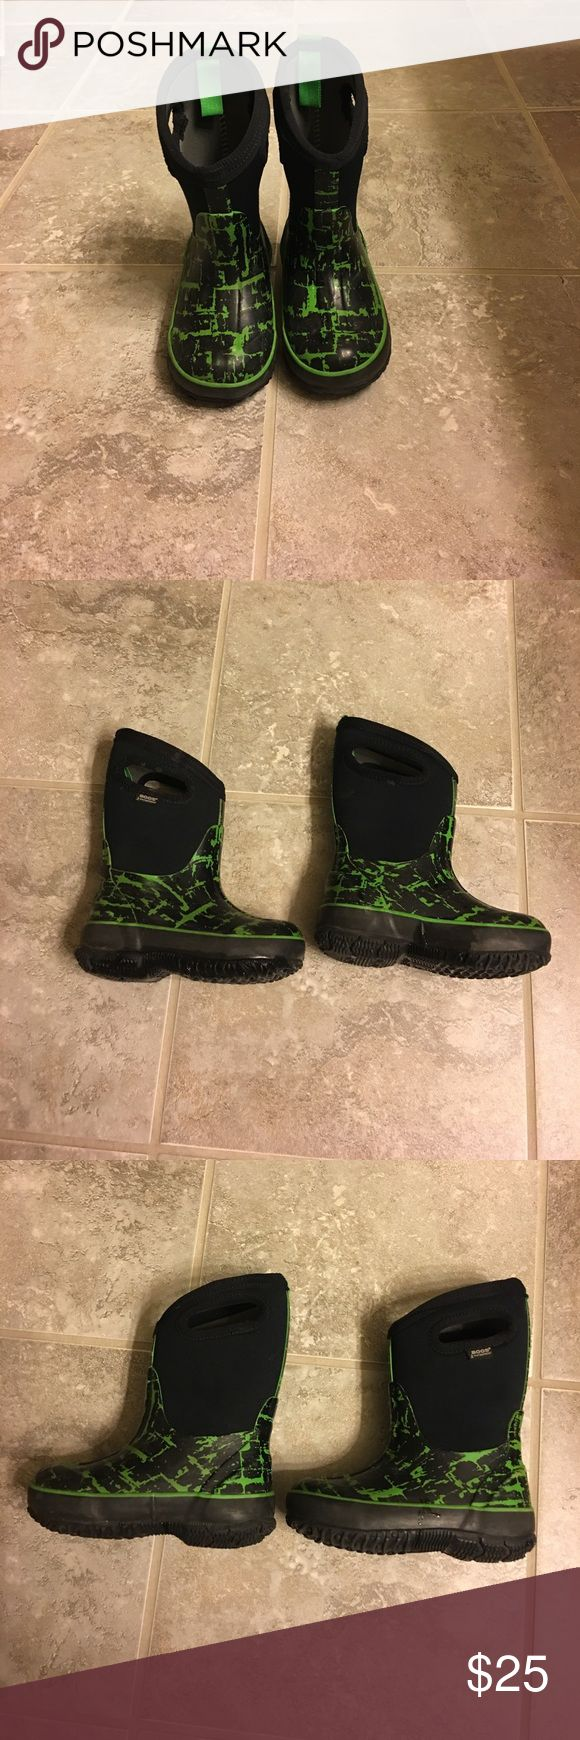 Bogs boots In good used condition. Worn one season. Bogs Shoes Boots